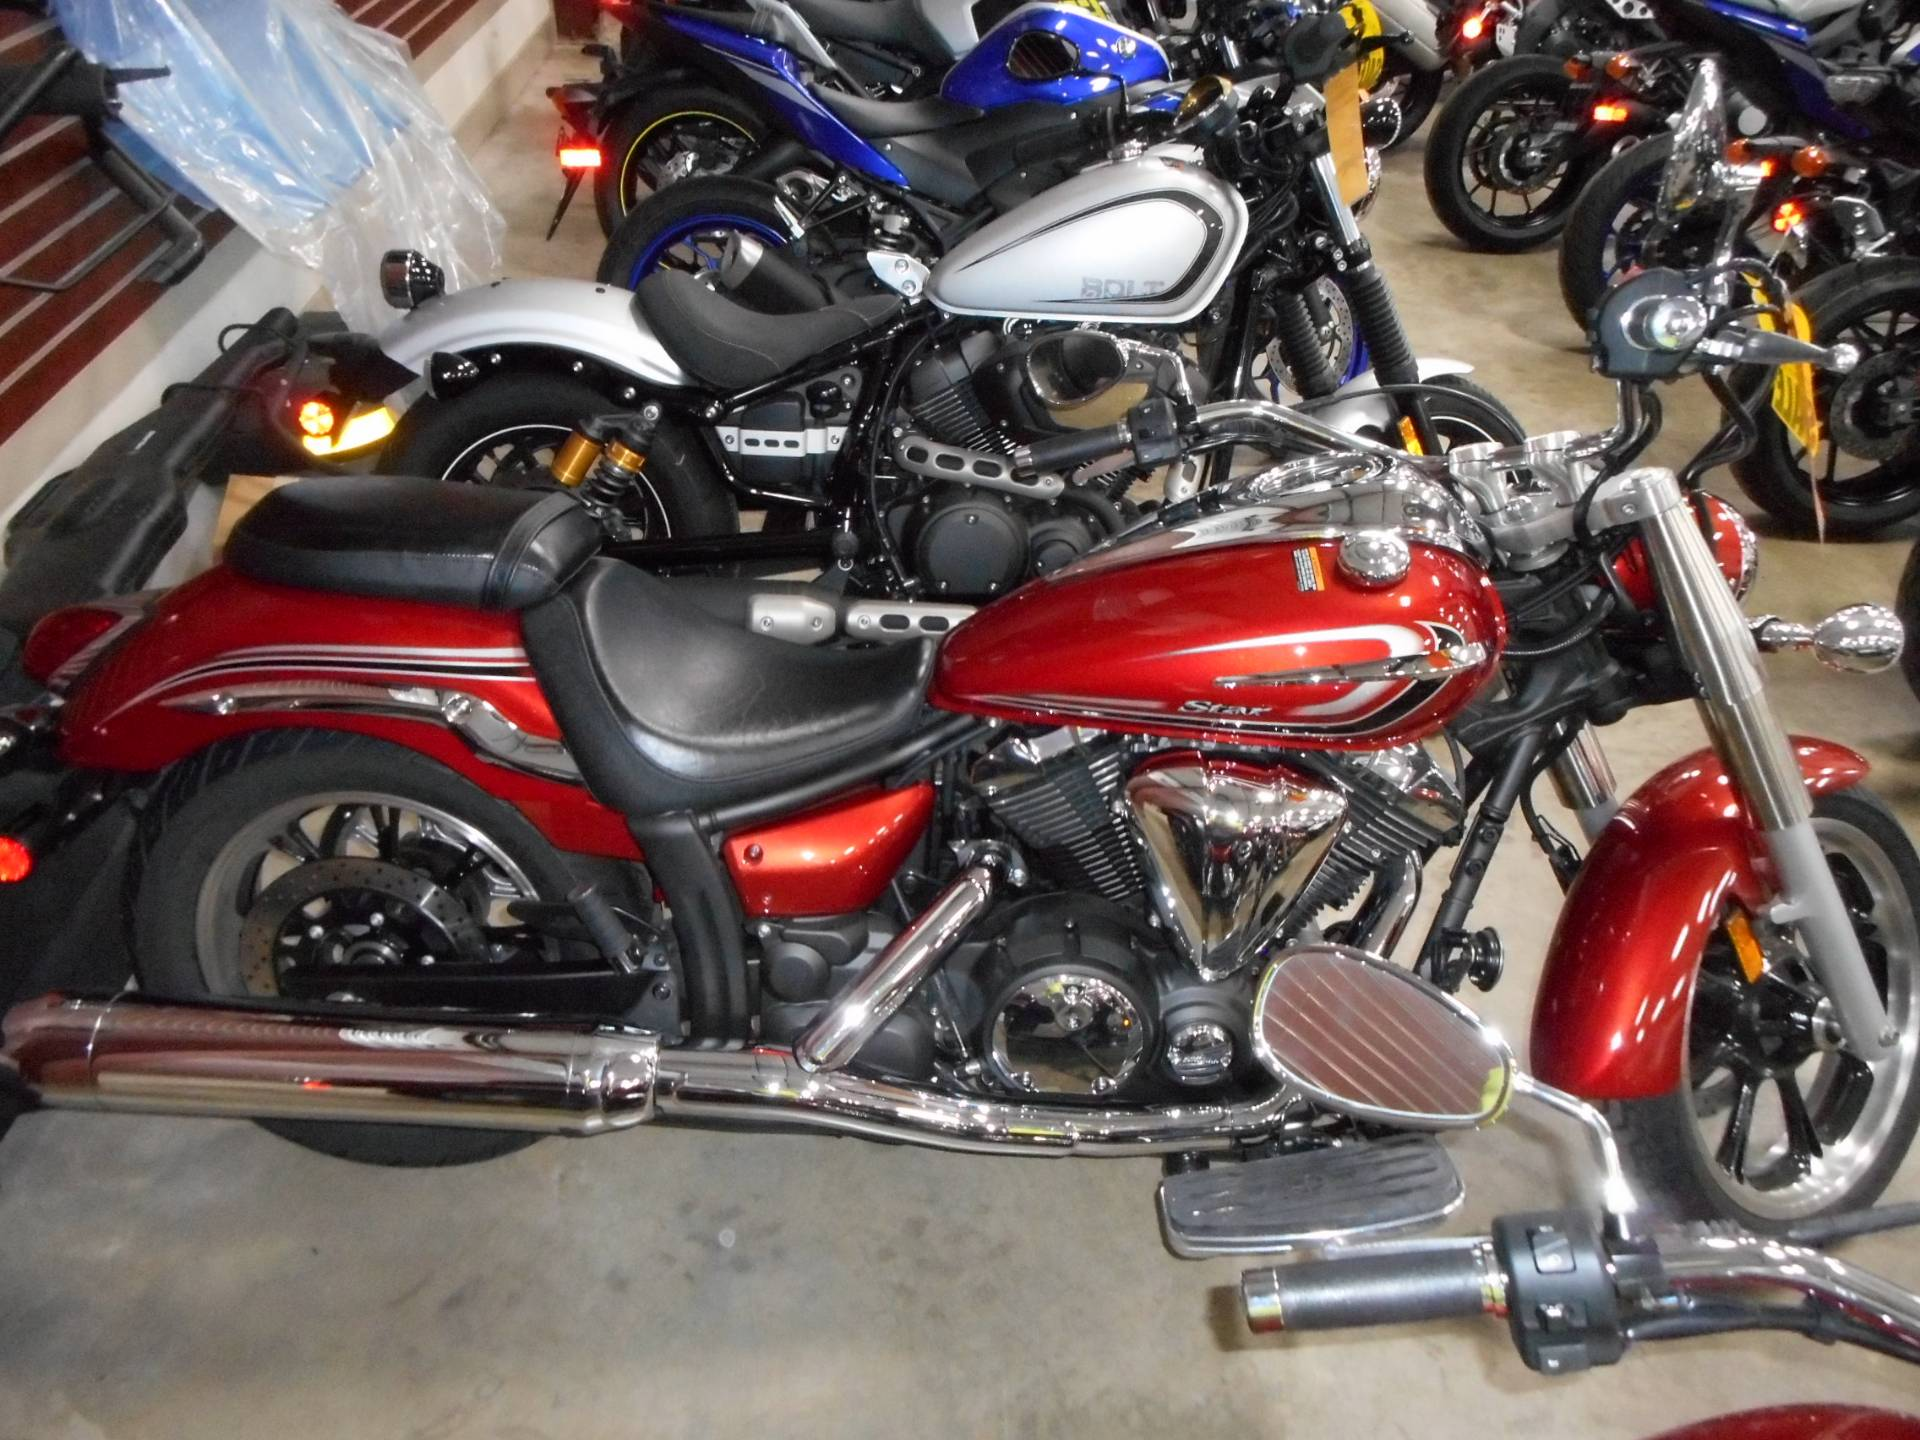 2015 Yamaha V Star 950 in Belvidere, Illinois - Photo 6